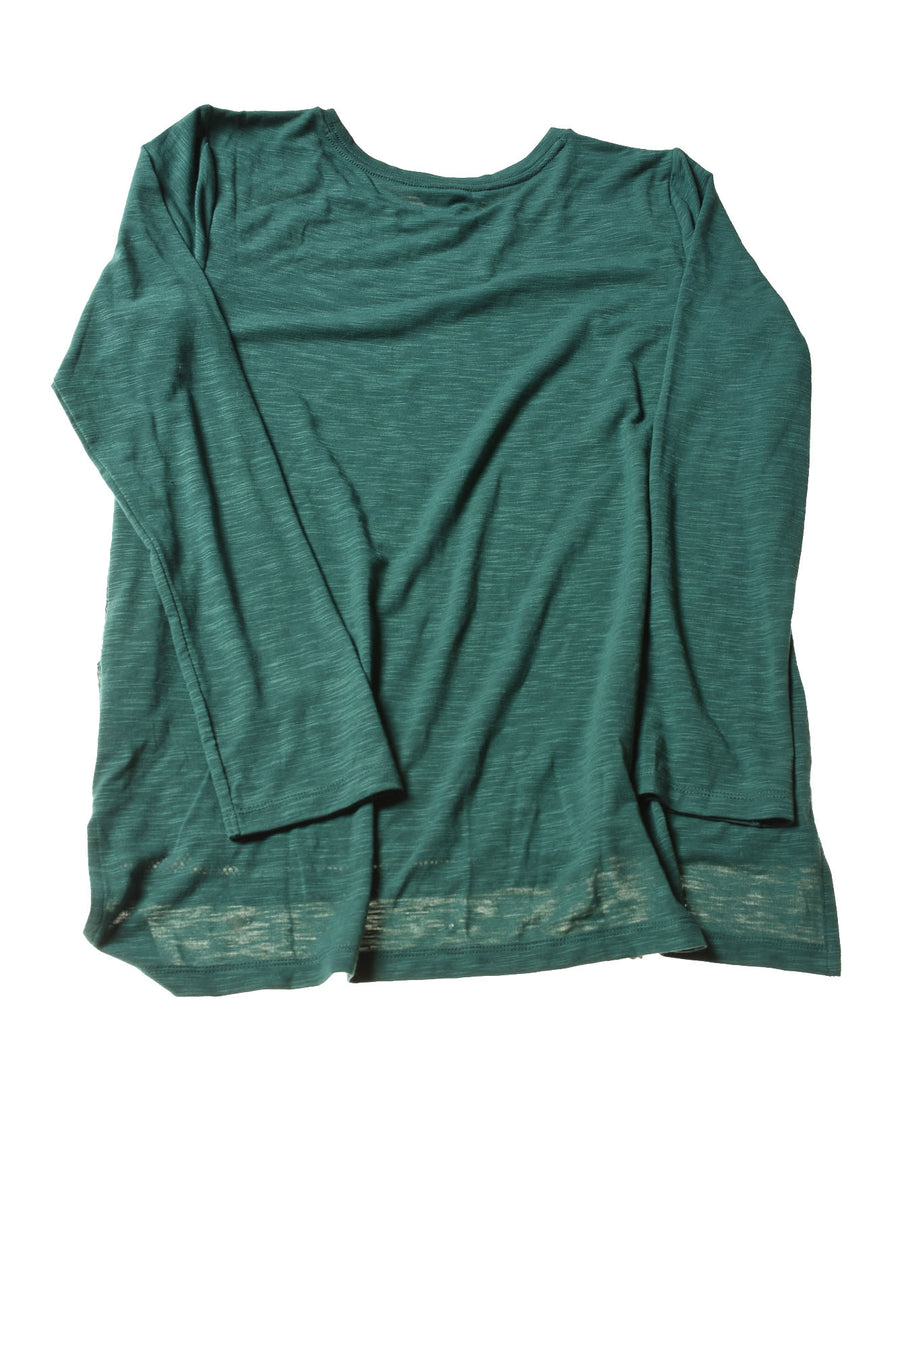 NEW Ellen Tracy Women's Top Large Pine Forest